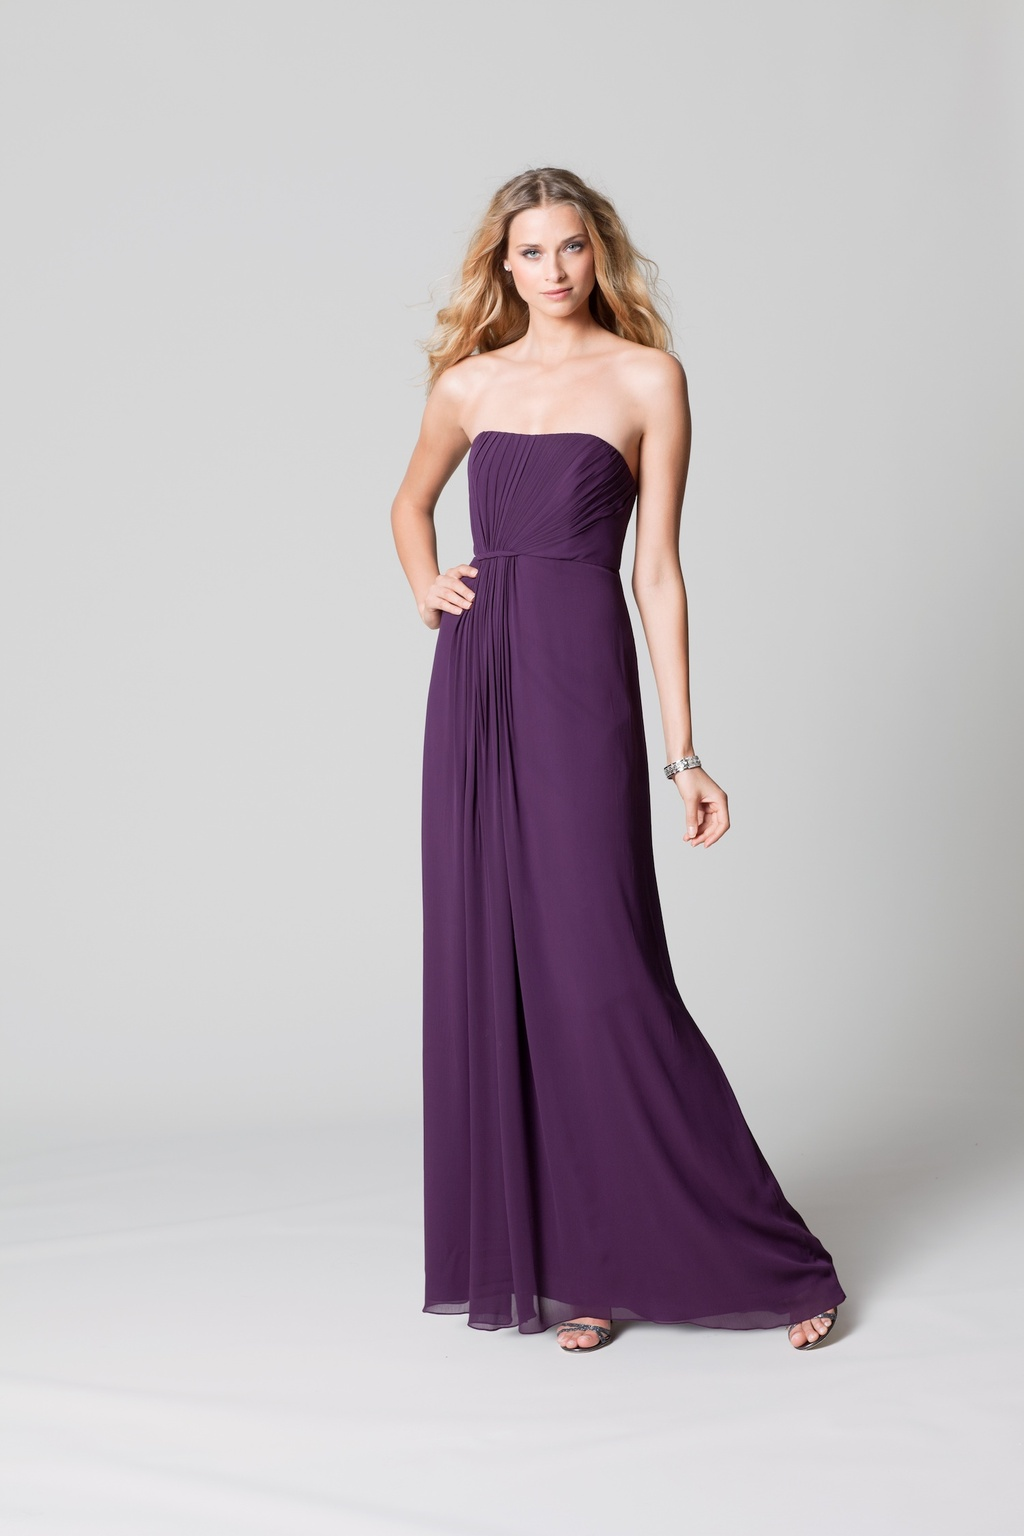 affordable bridesmaids dresses Fall 2012 WTOO by Watters bridal party eggplant purple full length